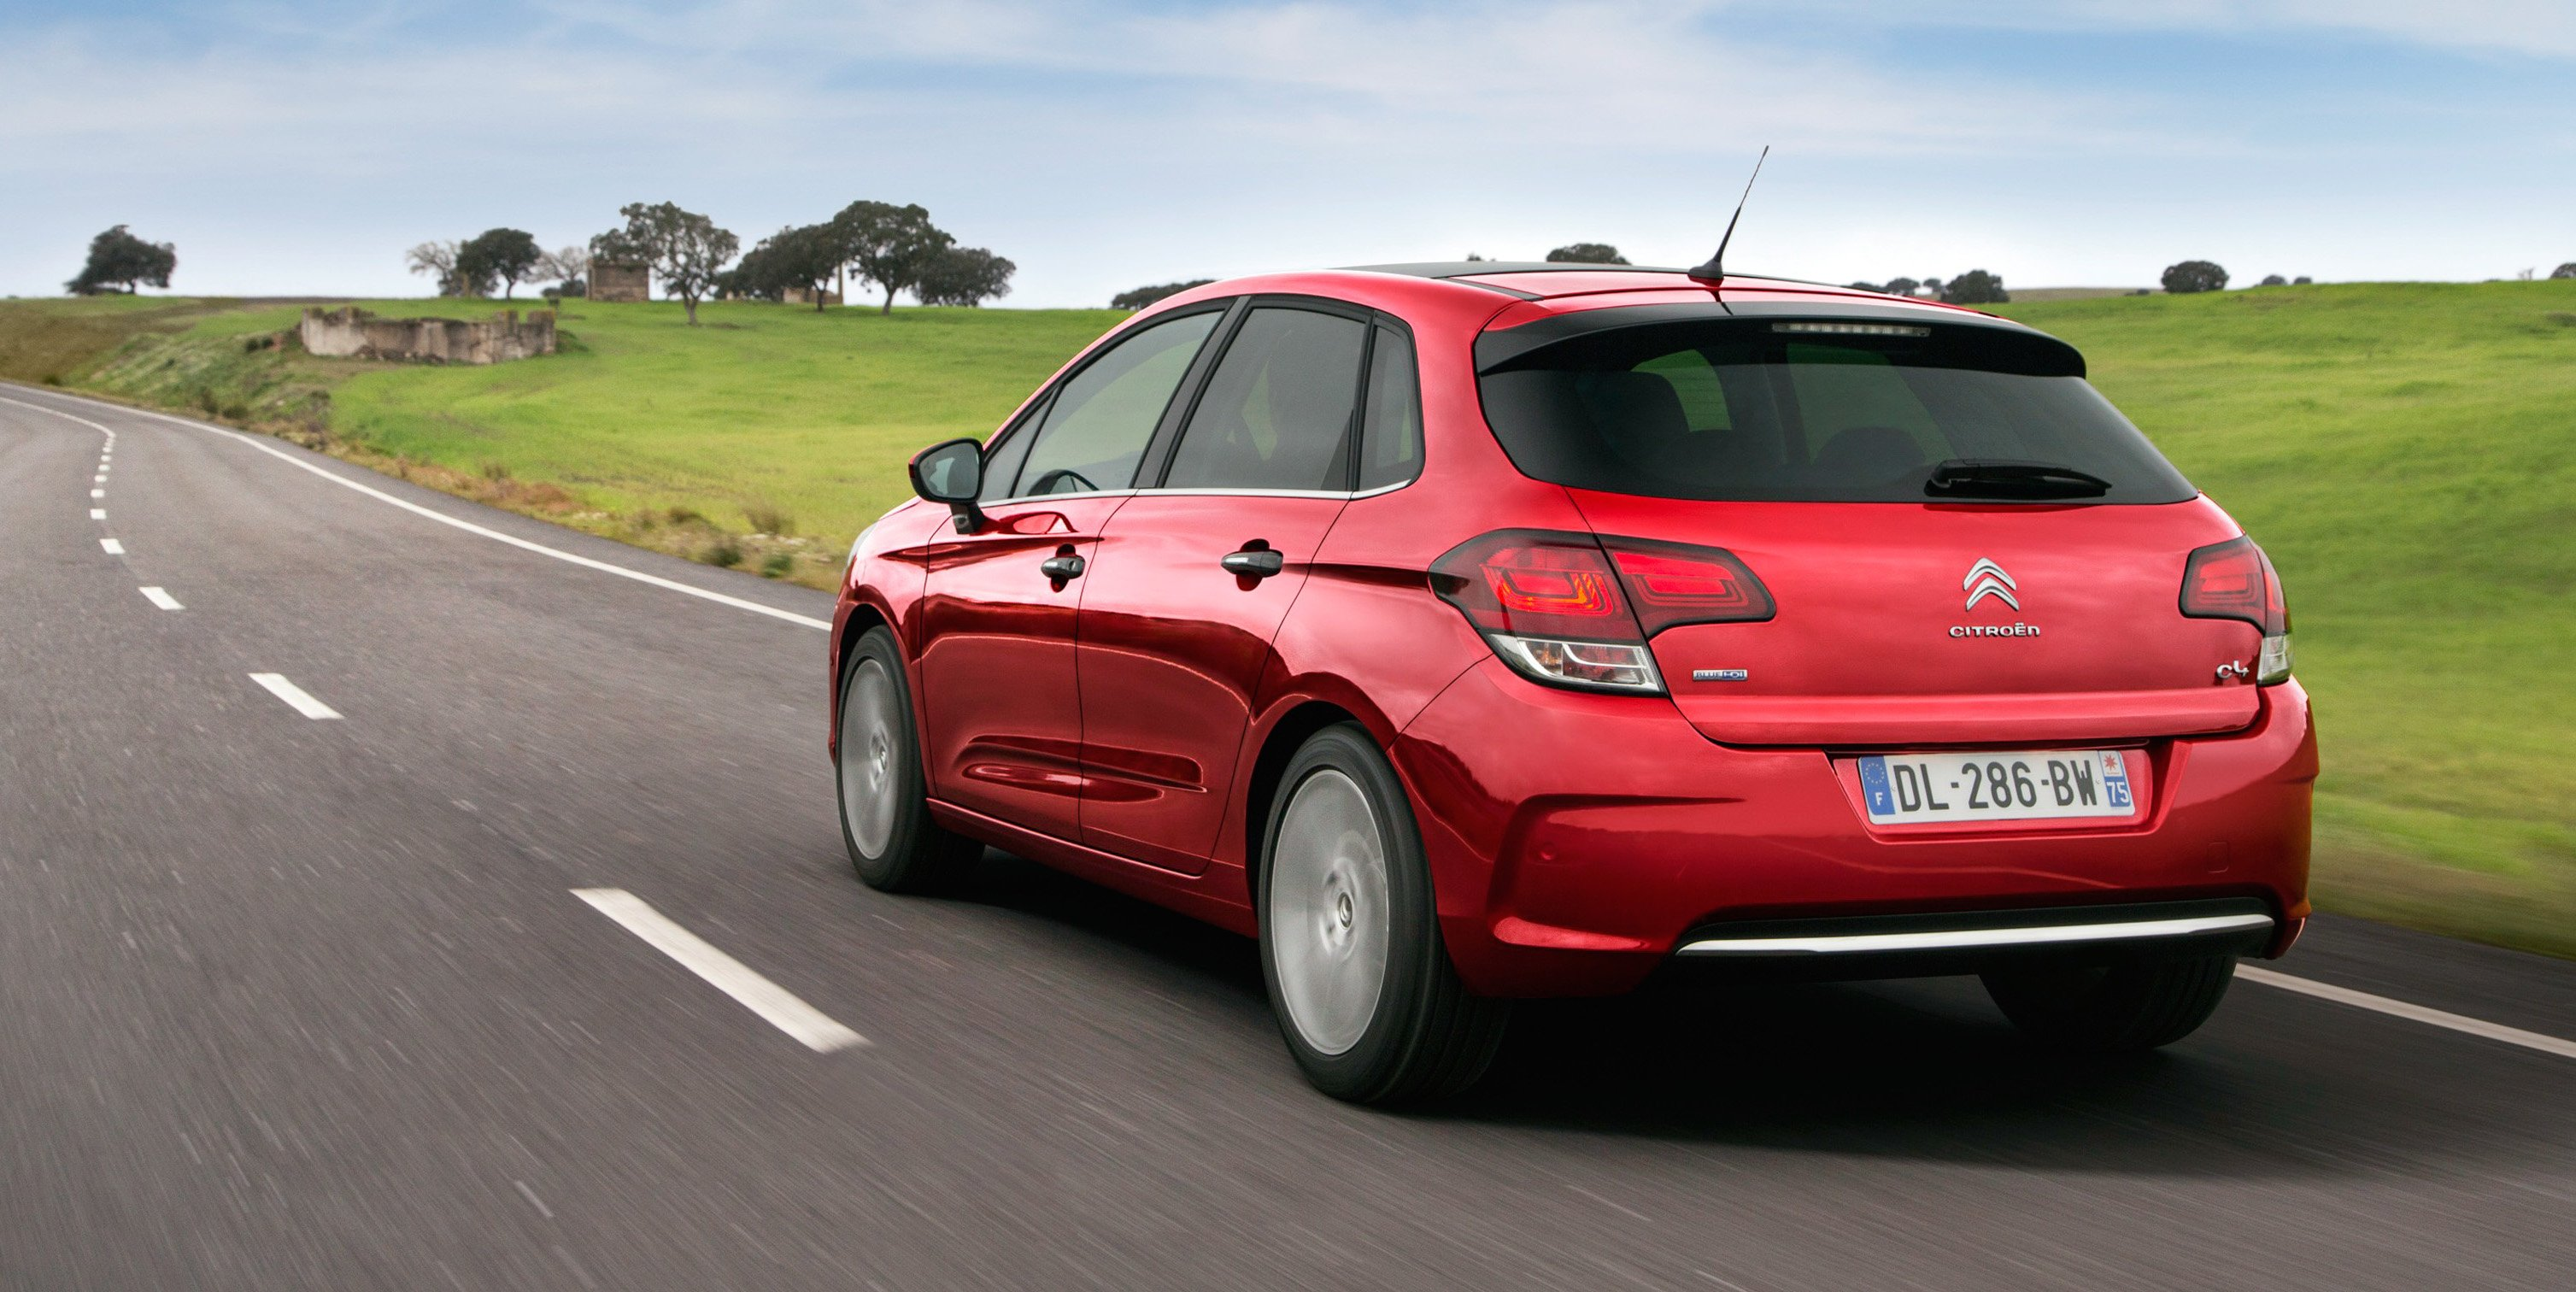 2016 citroen c4 specifications revealed photos 1 of 3